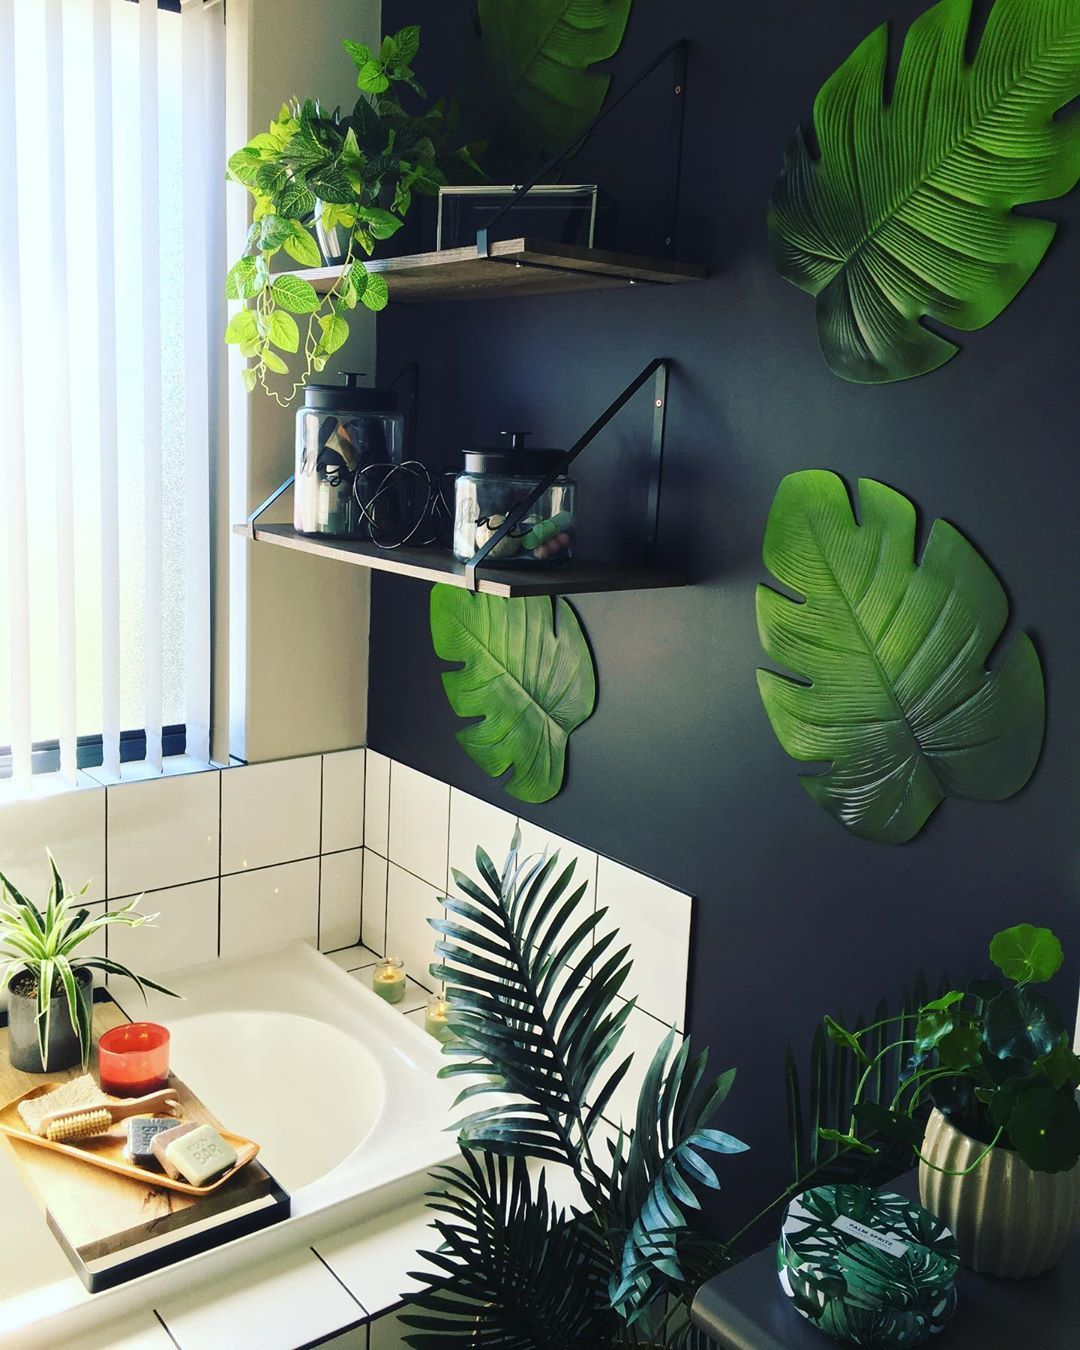 Kmart Hack Queen On Instagram Tropical Bathroom My Little Kmart Hack To Decorate My Walls A Little Kmart Hacks Tropical Bathroom Kmart Home Also you can frame your print at online framing services: kmart hack queen on instagram